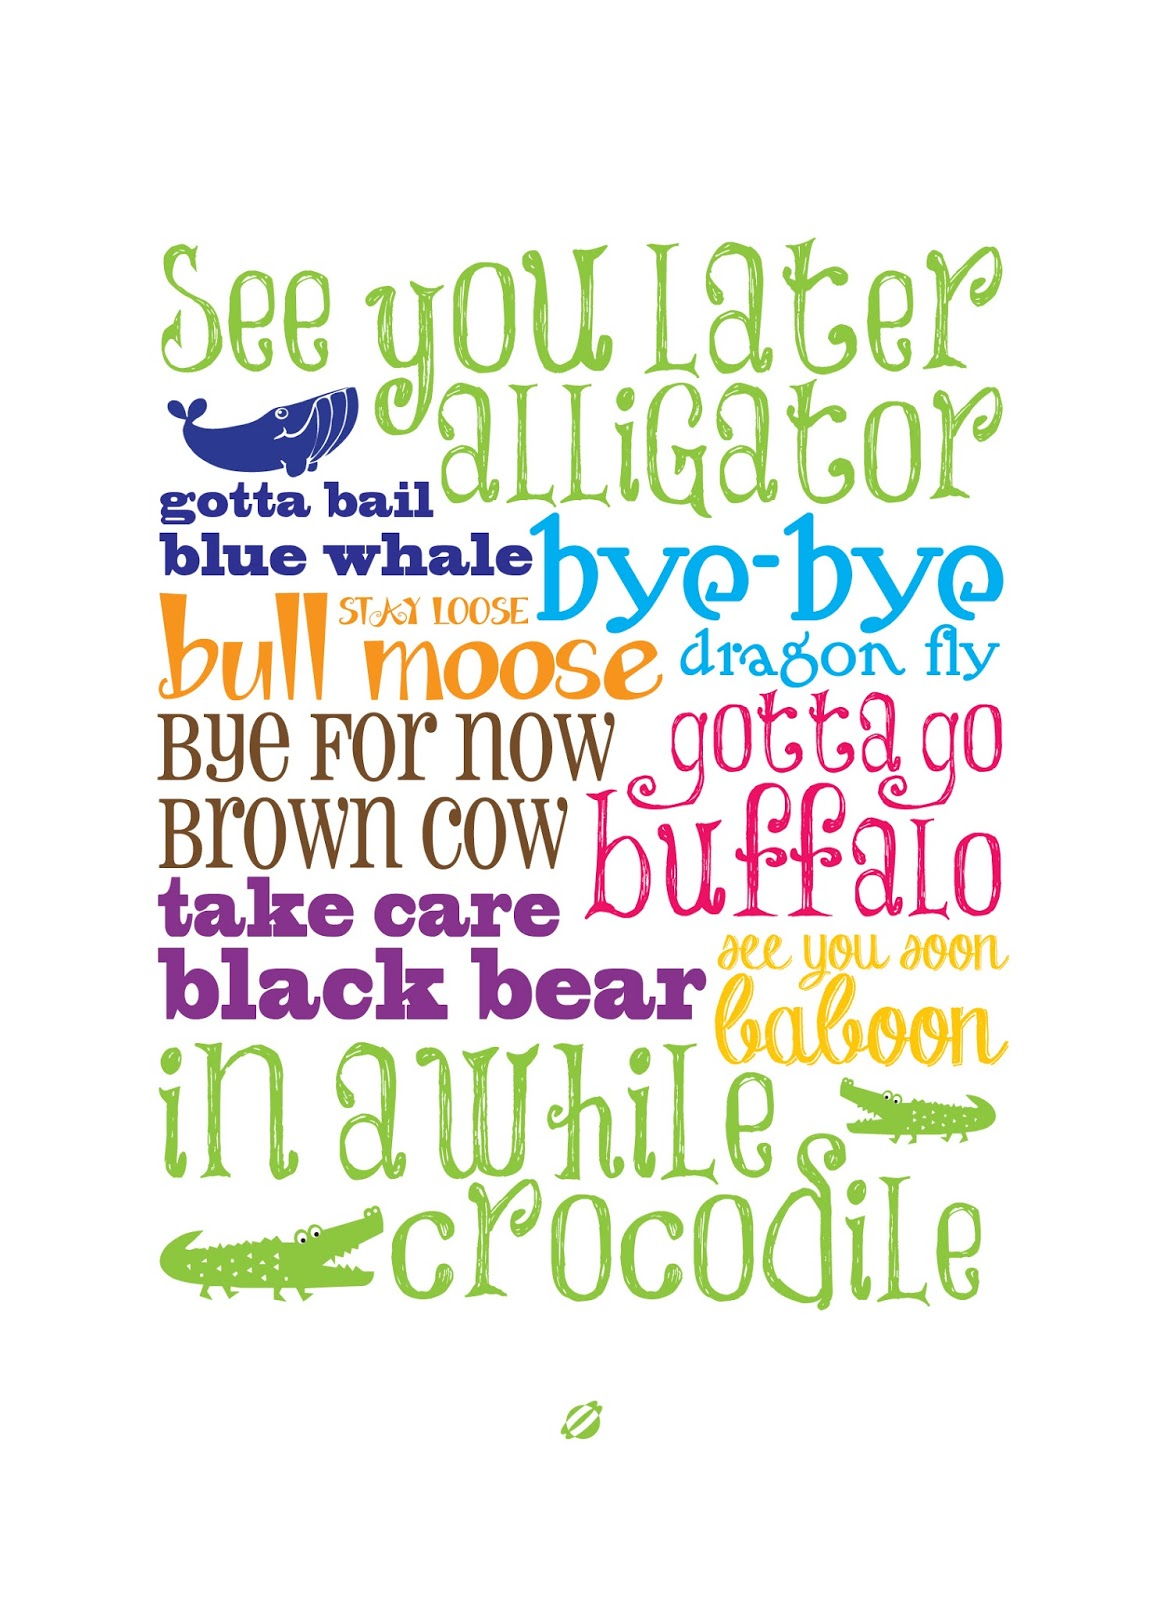 photo about See You Later Alligator Poem Printable named LostBumblebee: Watch Yourself Later on Alligator